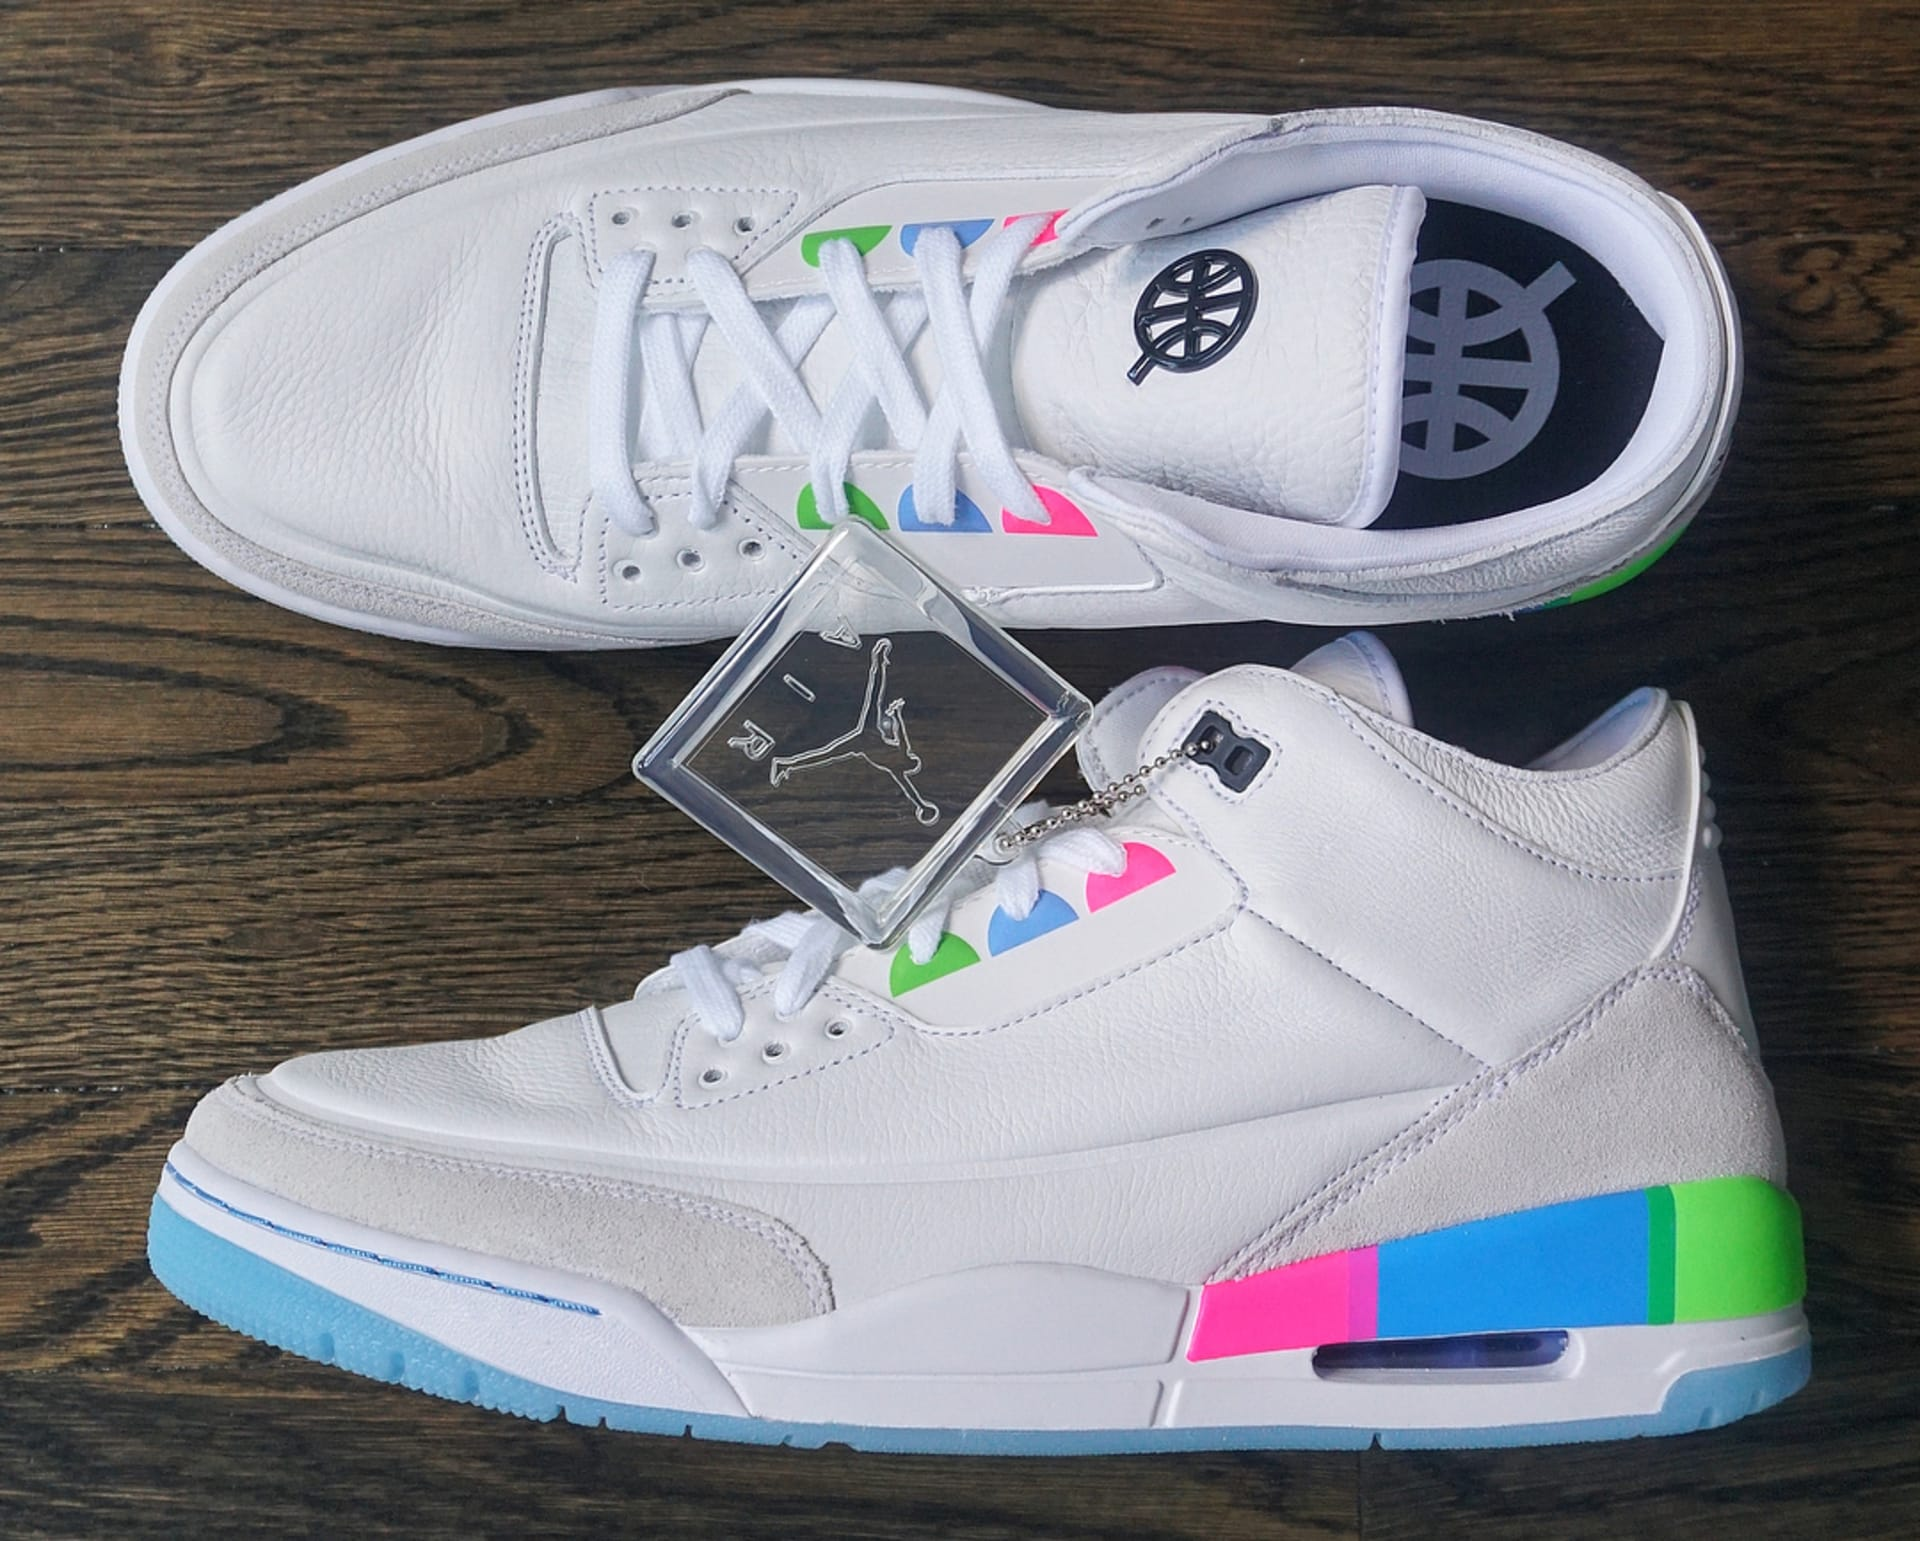 380b9c254d18 Air Jordan III Retro Quai54 2018 (Friends and Family)